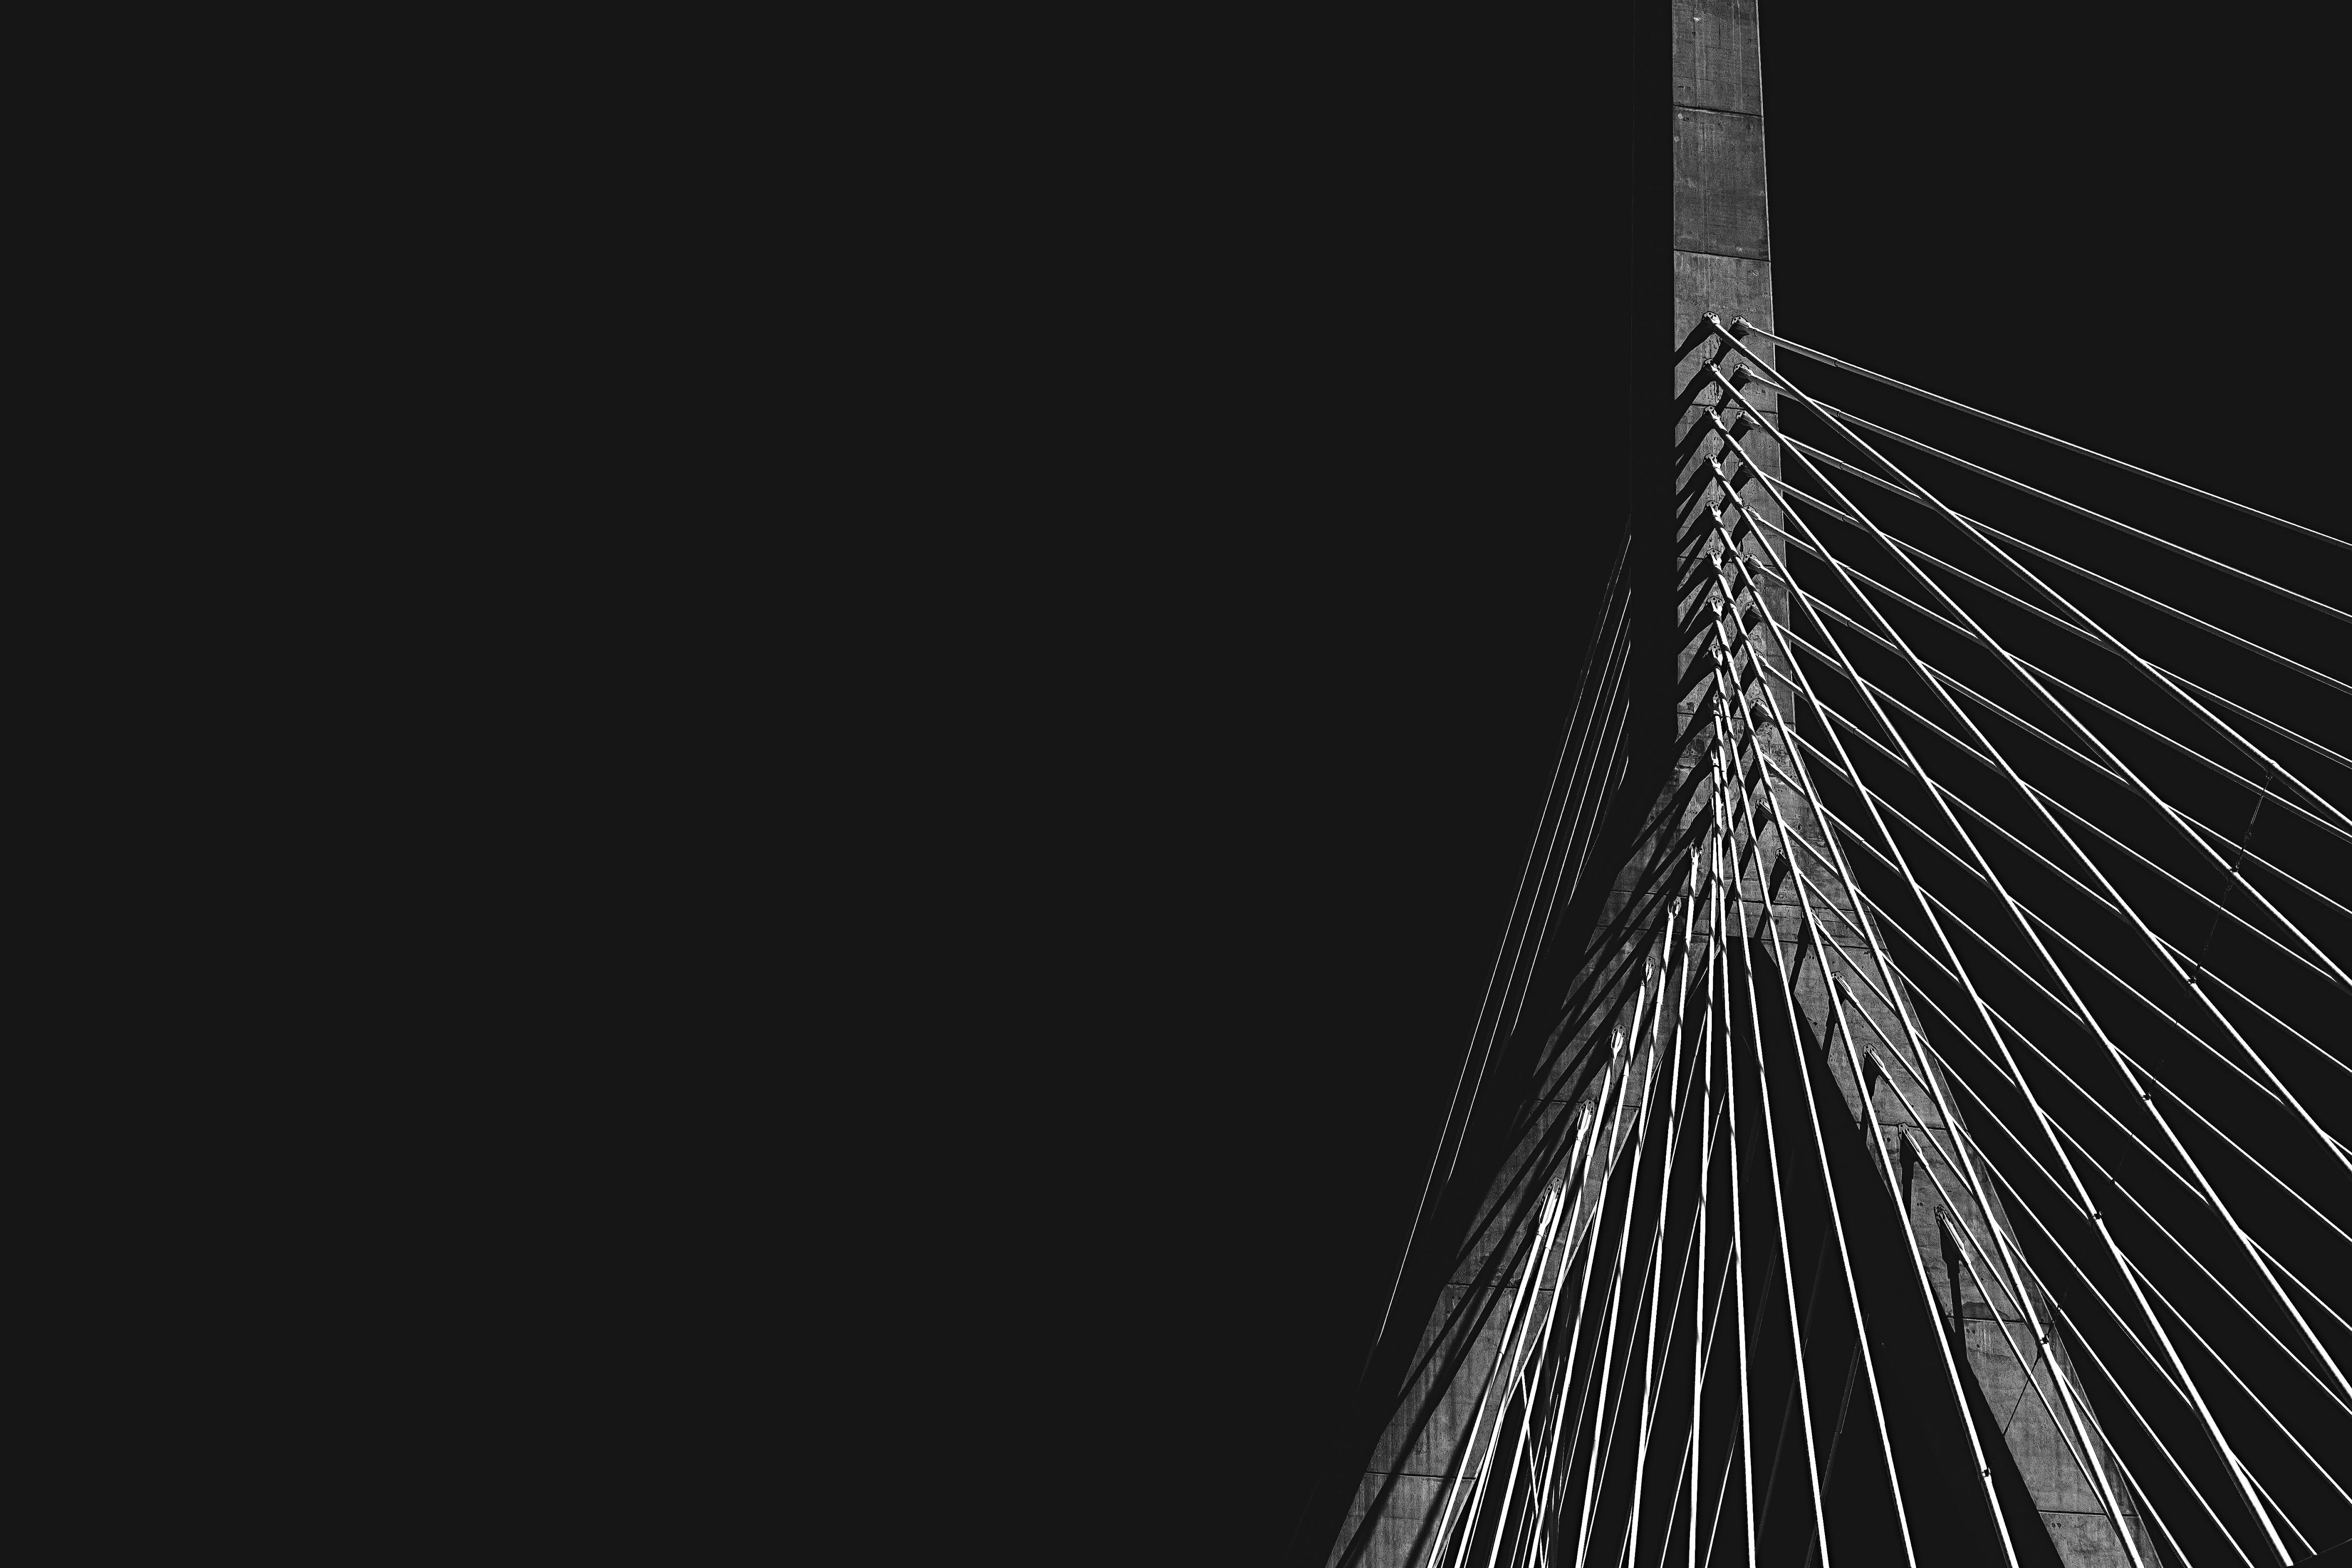 An image of a close up photo of a suspension bridge. By @osmanrana on unsplash.